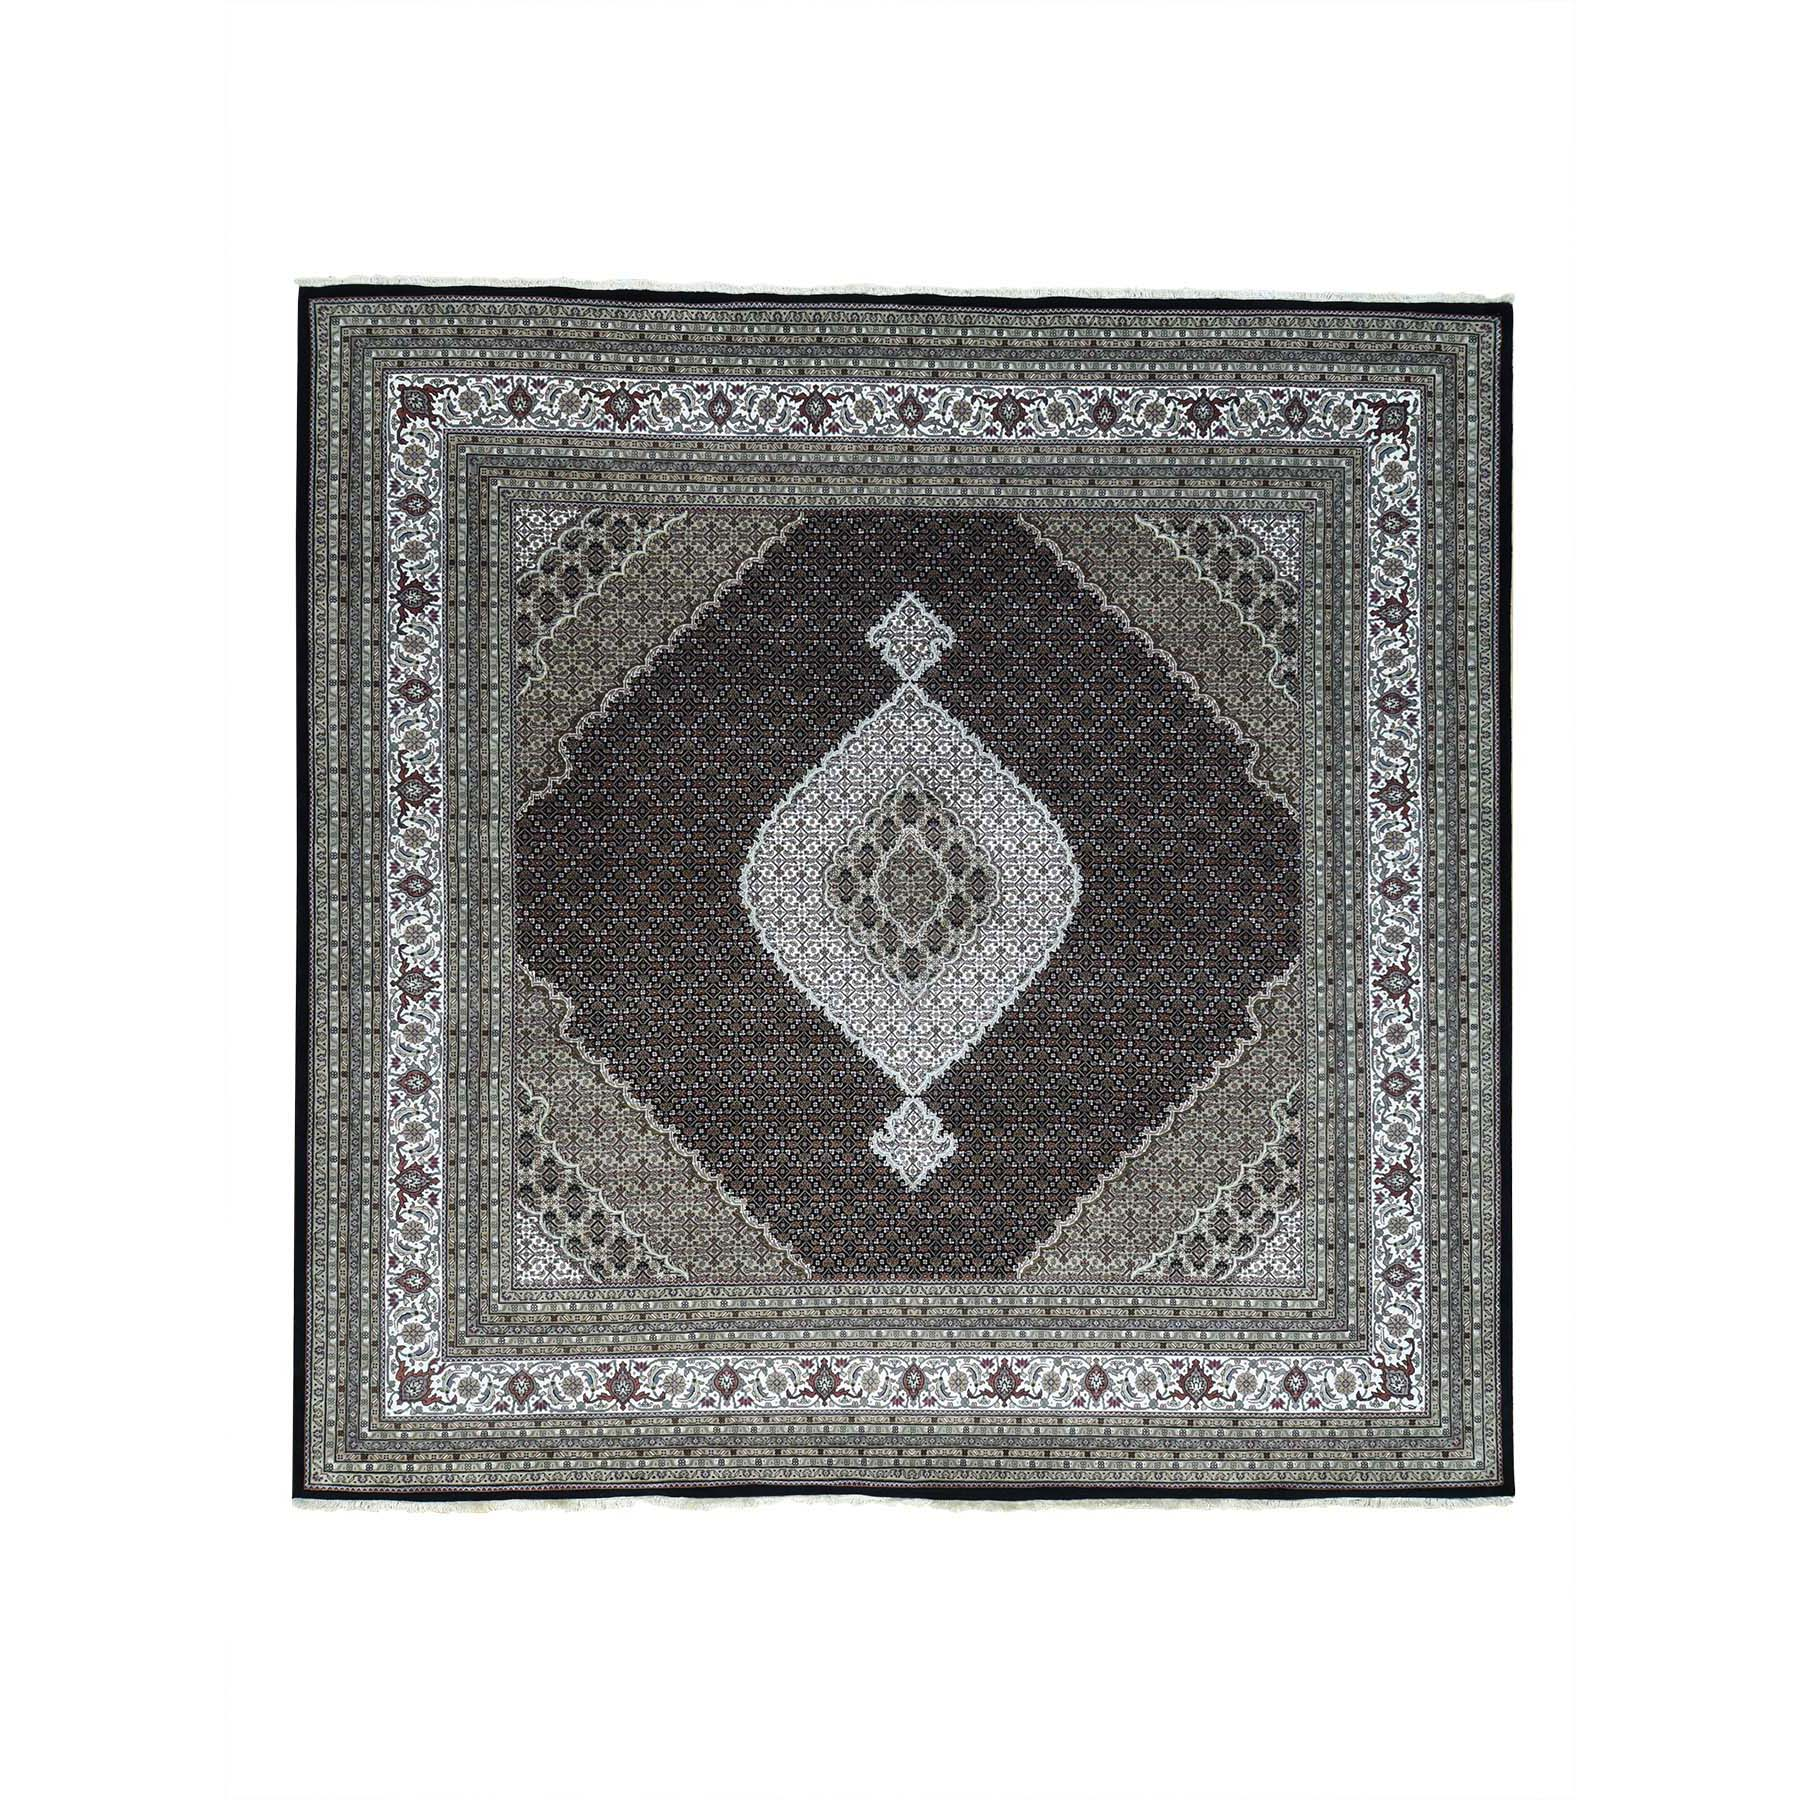 Pirniakan Collection Hand Knotted Black Rug No: 161954